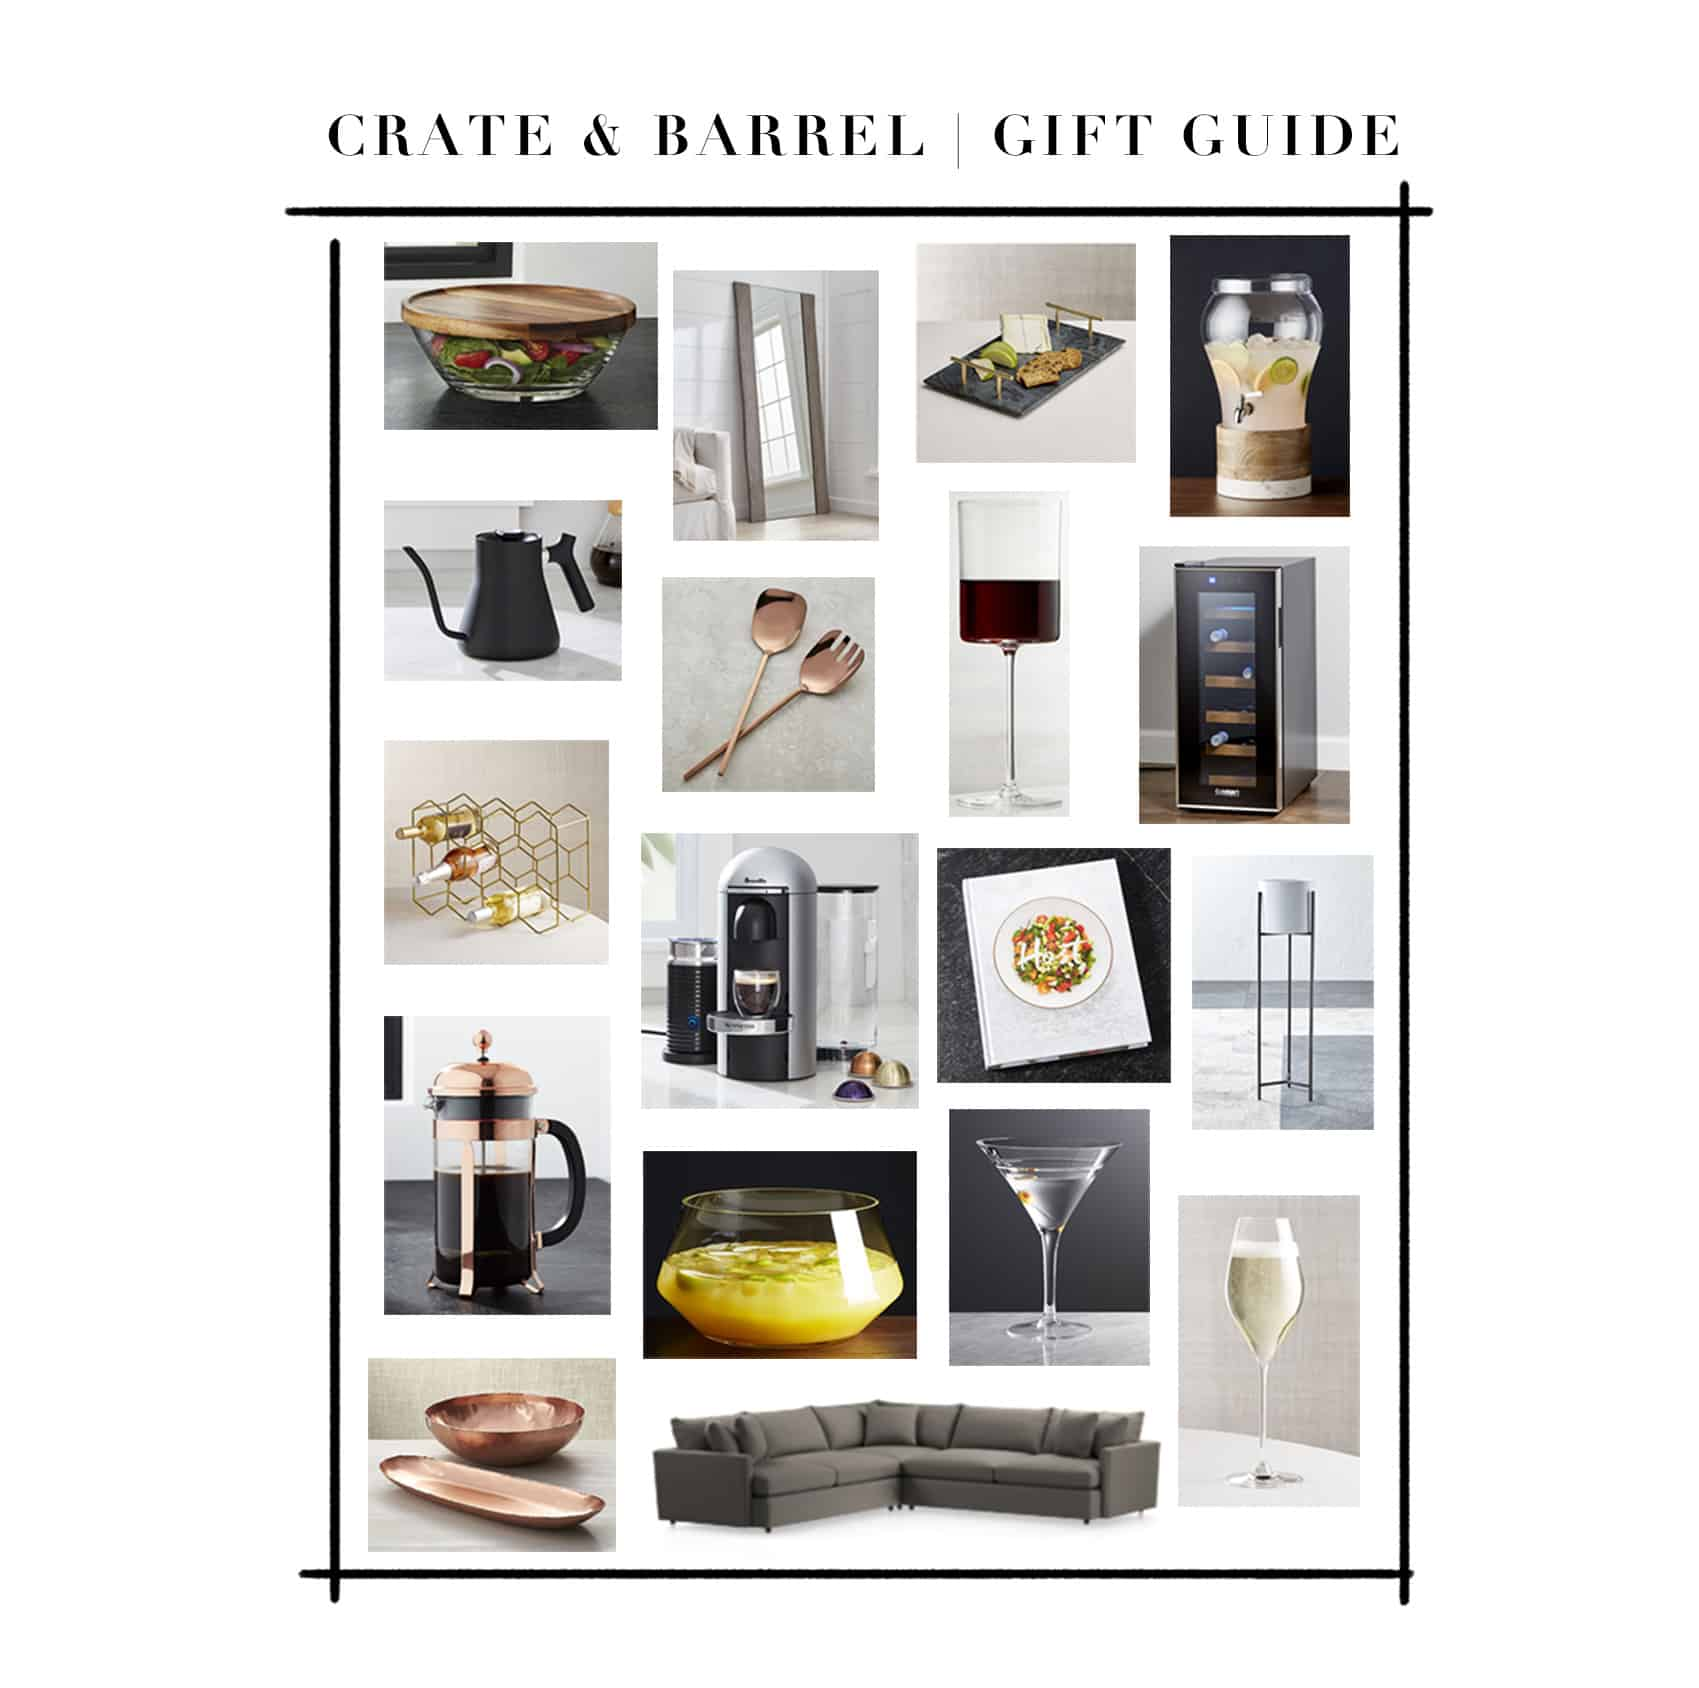 Crate & Barrel Gift Guide